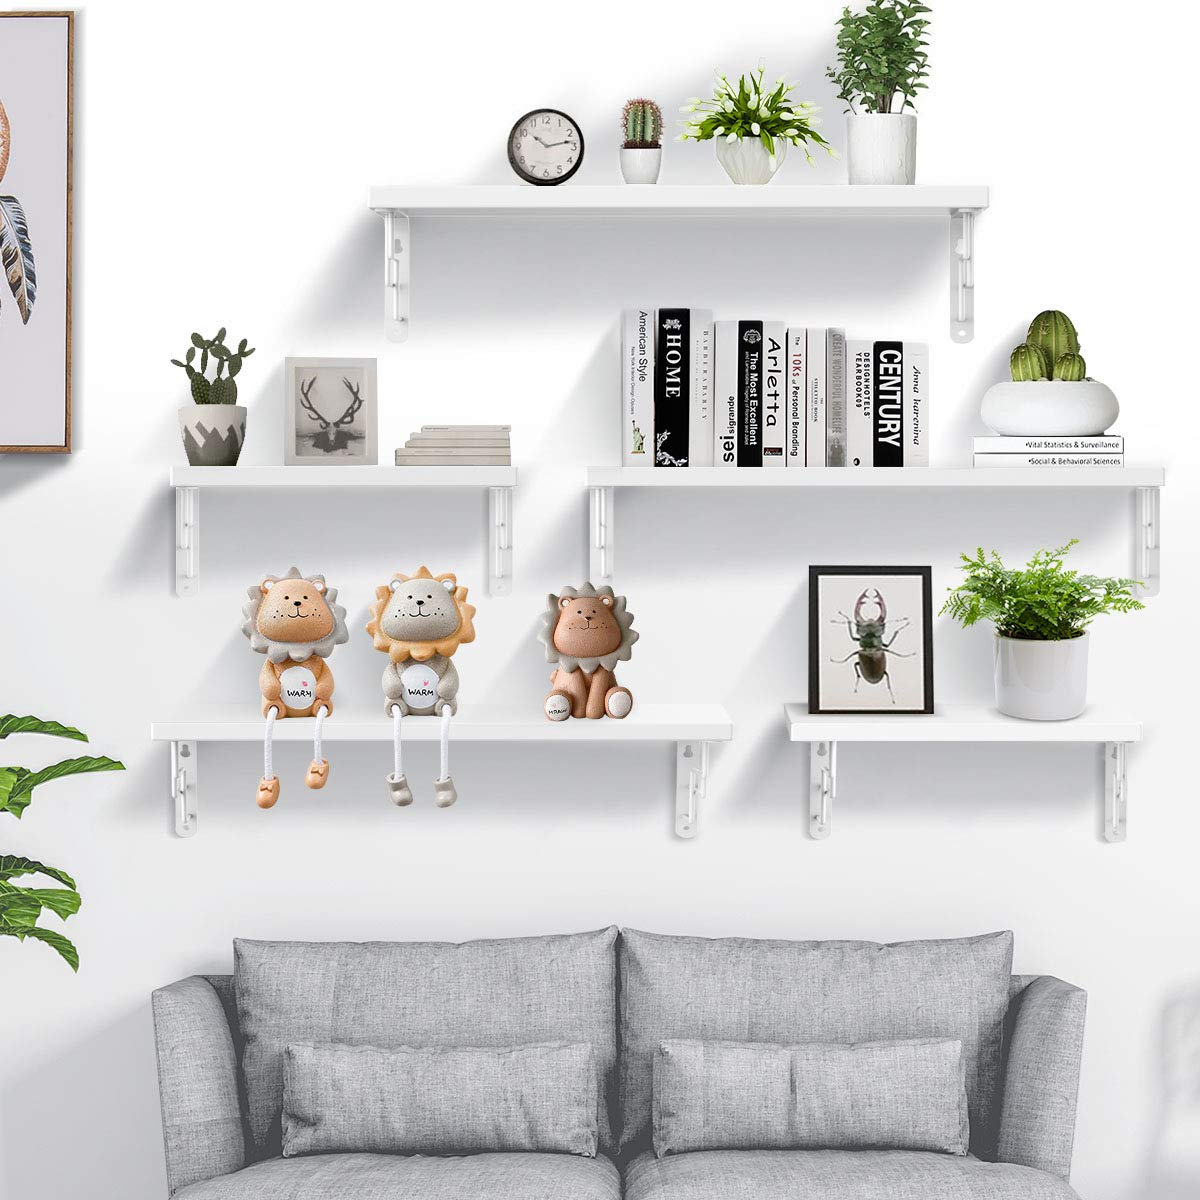 Amazon.com: SIWUTIAO Floating Shelves Wall Mounted for ...